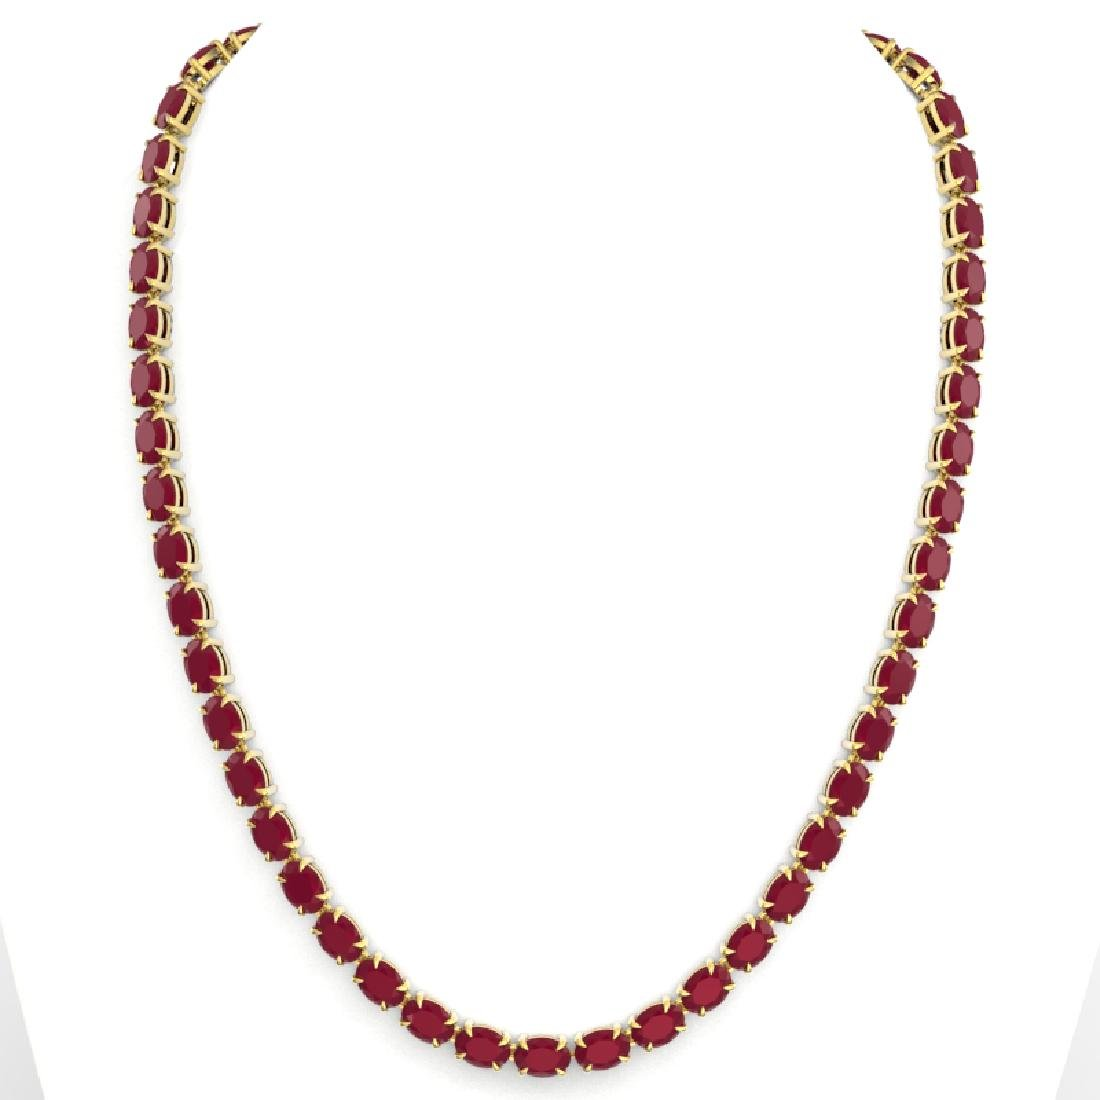 68 CTW Ruby Eternity Designer Inspired Tennis Necklace - 3